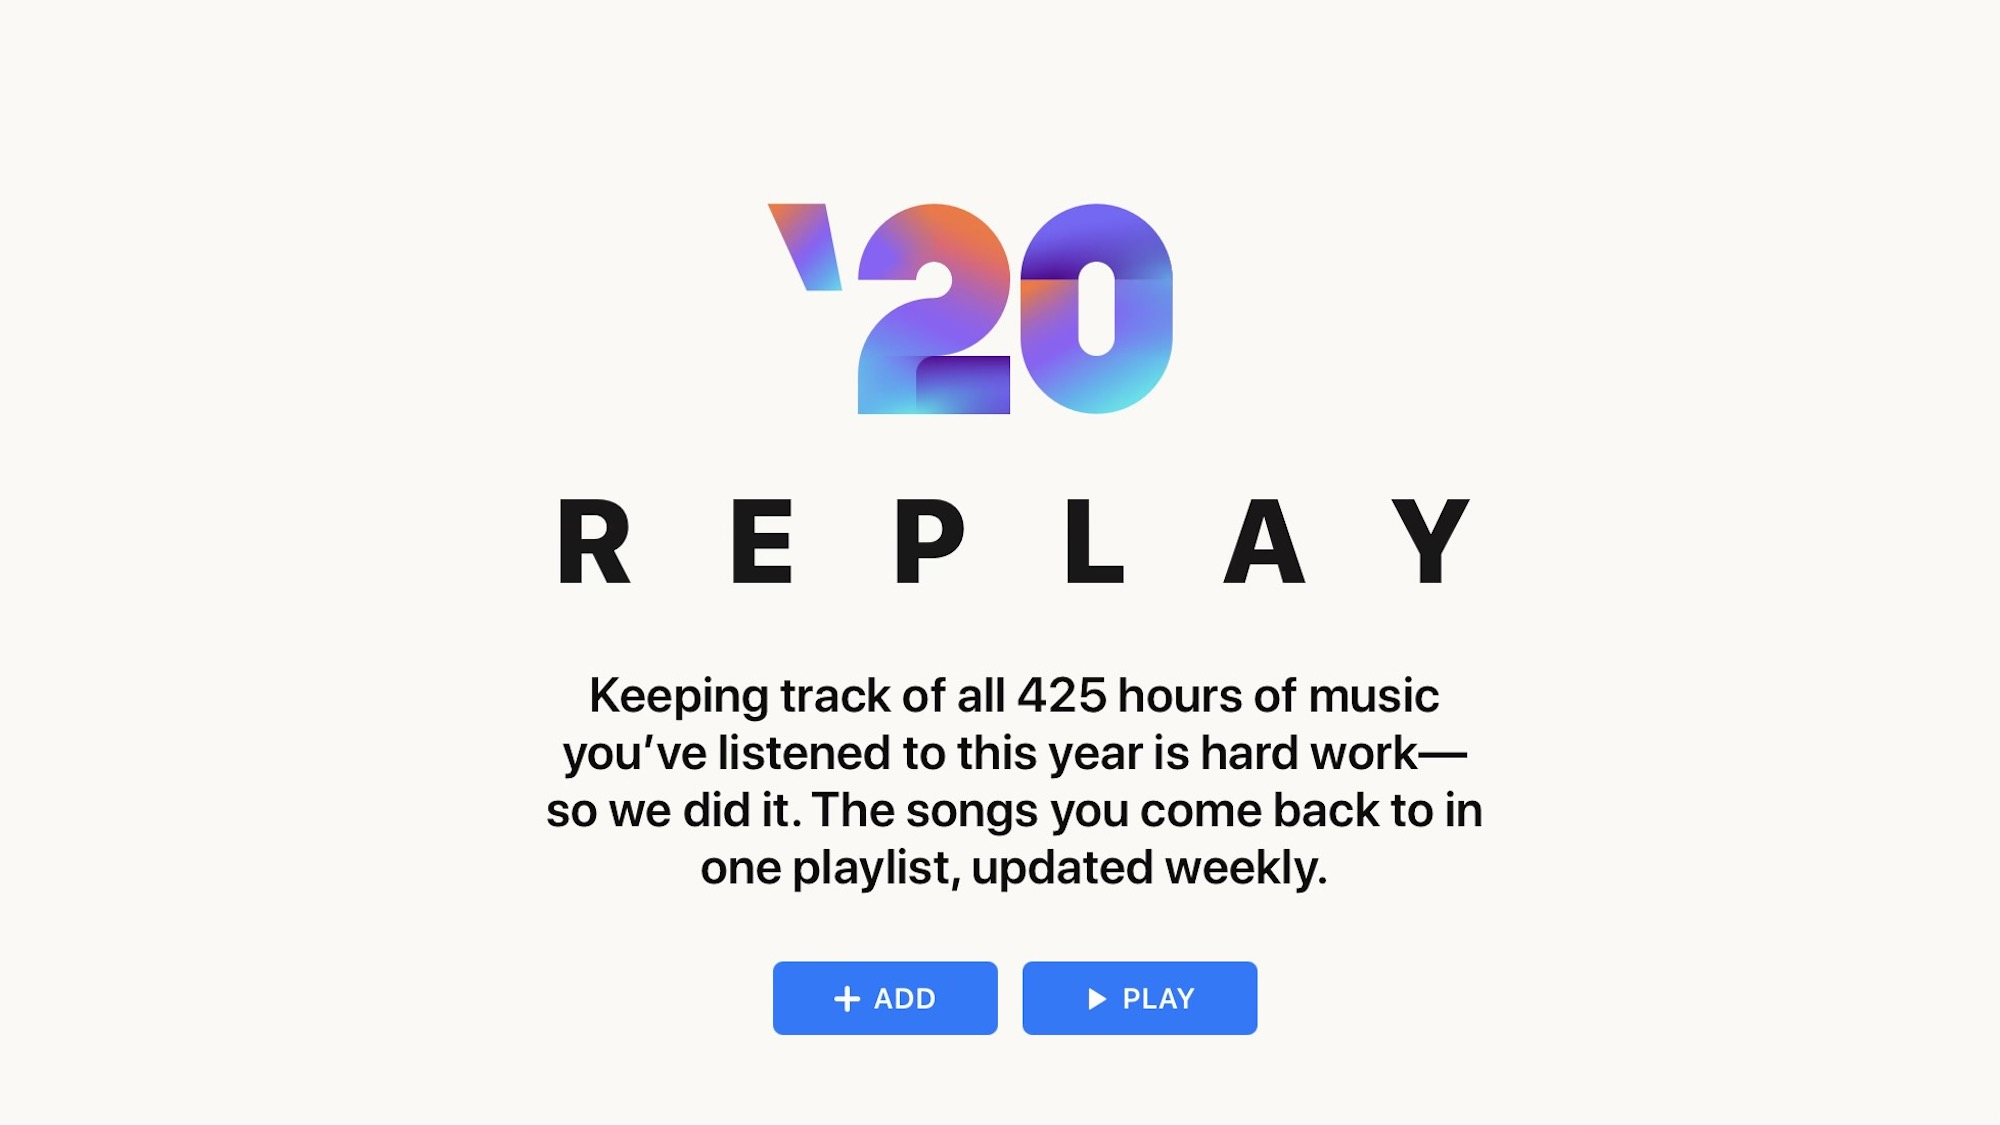 photo of Apple Music Replay 2020: How to find your top songs, artists, albums, and more image